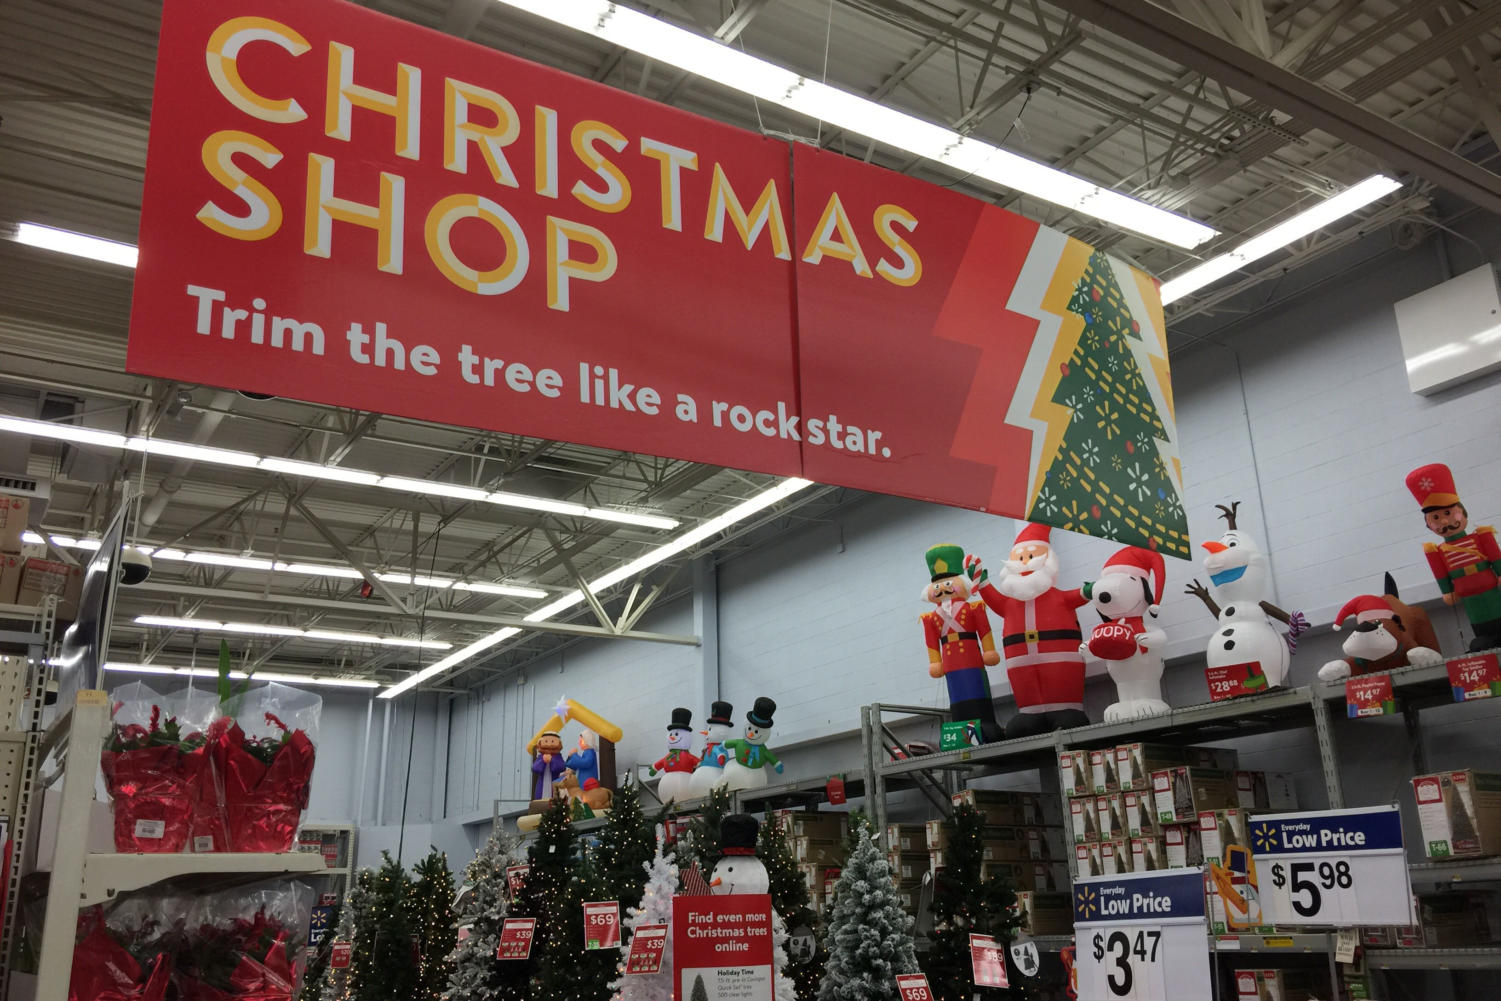 walmart department store displays christmas decorations - Walmart Christmas Decorations 2017